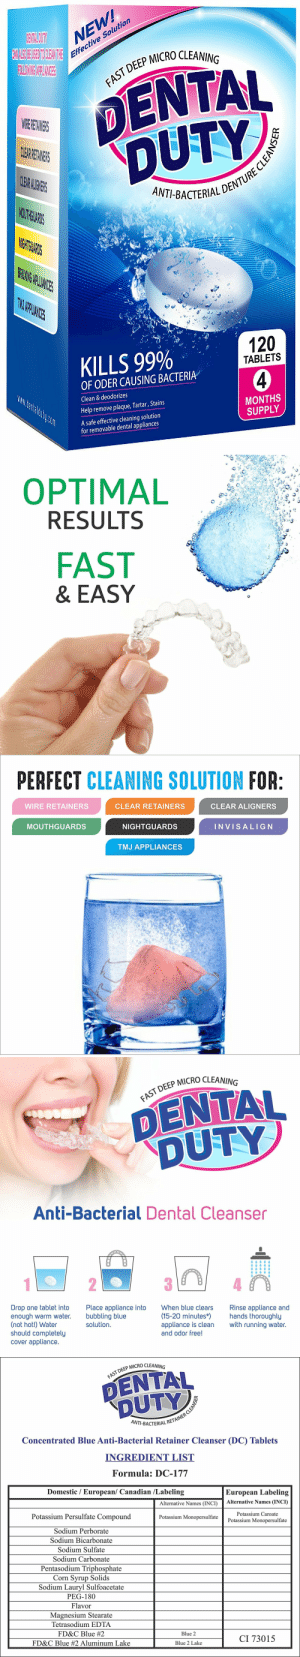 Bad, Fresh, and Lol: NEW  e Solution  Effectiv  P MICRO CLEANING  DENTAL  DUTY  AST DEEP  CL  ANT-BACTERIALD  THG  PLIANIES  KILLS 99%  120  TABLETS  OF ODER CAUSING BACTERIA  Clean & deodorizes  Help remove plaque, Tartar, Stains  A safe effective cleaning solution  MONTHS  SUPPLY  for removable dental appliances   OPTIMAL  RESULTS  FAST  & EASY   PERFECT CLEANING SOLUTION FOR  WIRE RETAINERS  CLEAR RETAINERS  CLEAR ALIGNERS  MOUTHGUARDS  NIGHTGUARDS  INVISALIG N  TMJ APPLIANCES   DEEP MICRO CLEANING  DENTAL  DUTY  Anti-Bacterial Dental Cleanser  Drop one tablet into  enough warm water.  (not hot!) Water  should completely  cover appliance.  Place appliance into  bubbling blue  solution  When blue clears  Rinse appliance and  (15-20 minutes*hands thoroughly  appliance is clean with running water.  and odor free!   P MICRO CLEANING  FAST DEEP  NT-BACTERIAL R  Concentrated Blue Anti-Bacterial Retainer Cleanser (DC) Tablets  INGREDIENT LIST  Formula: DC-177  Domestic / European/ Canadian /Labeling  European Labeling  Alternative Names (INCI)Alternative Names (INCI)  Potassium Persulfate Compound  Sodium Perborate  Sodium Bicarbonate  Sodium Sulfate  Sodium Carbonate  Pentasodium Triphosphate  Corn Svrup Solids  Sodium Lauryl Sulfoacetate  PEG-180  Flavor  Magnesium Stearate  Tetrasodium EDTA  FD&C Blue #2  FD&C Blue #2 Aluminum Lake  Potassium Caroate  Potassium Monopersulfate  Potassium Monopersulfate  Blue 2  CI 73015  Blue 2 Lake lol-coaster:    120 Retainer Cleaning TabletsKILLS GERMS  BACTERIA: Dental Duty anti-bacterial cleaning tablets is The Most Effective and Safest Solution on the market today to remove stains, Bad breath, plaque  tartar when cleaning dental appliances.MULTIPURPOSE: Our Cleaner is the best choice for cleaning Invisalign MouthGuard, Dentures, Retainer, wire appliances, Removable bridges, Night guard and other orthodontic appliances such as Aligners.OPTIMAL RESULTS: This impressive retainer cleaner blue bubble soak cleans FAST; killing bacteria in every corner of any oral appliance leaving it brite, ODORLESS and fresh.BRIGHTENS: Just drop one tablet into warm tap water and soak your Dental appliance for 15 minutes. Perfect line of defense against white plaque buildupRISK-FREE PURCHASE: we ensure all customers are happy or our 30 days return policiy with FULL REFUND of your purchase, HASSLE-FREE.https://goo.gl/4bJp2v